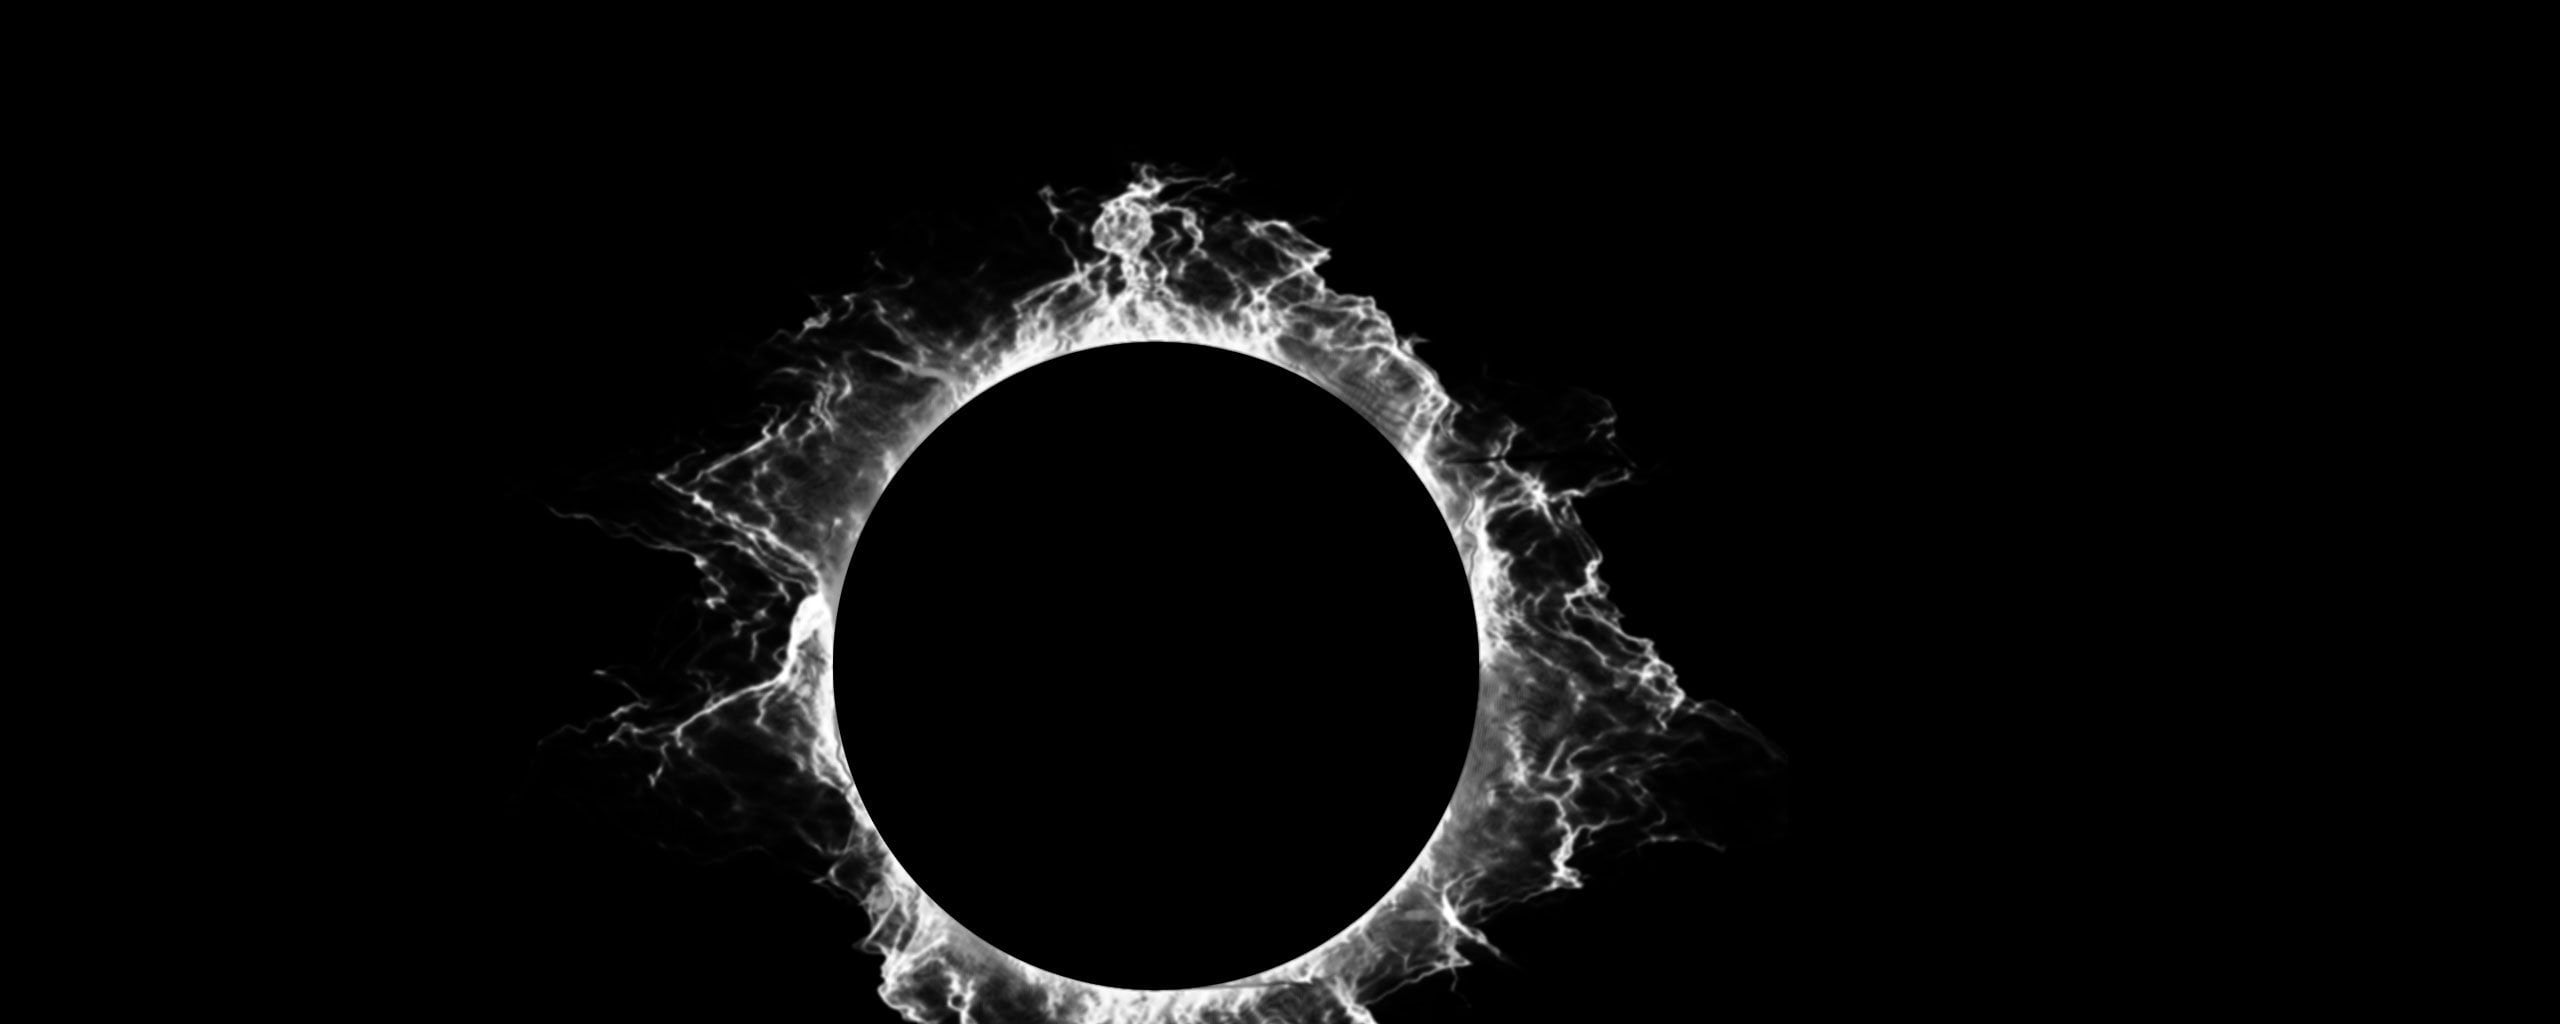 The Black Sun: from broken to whole